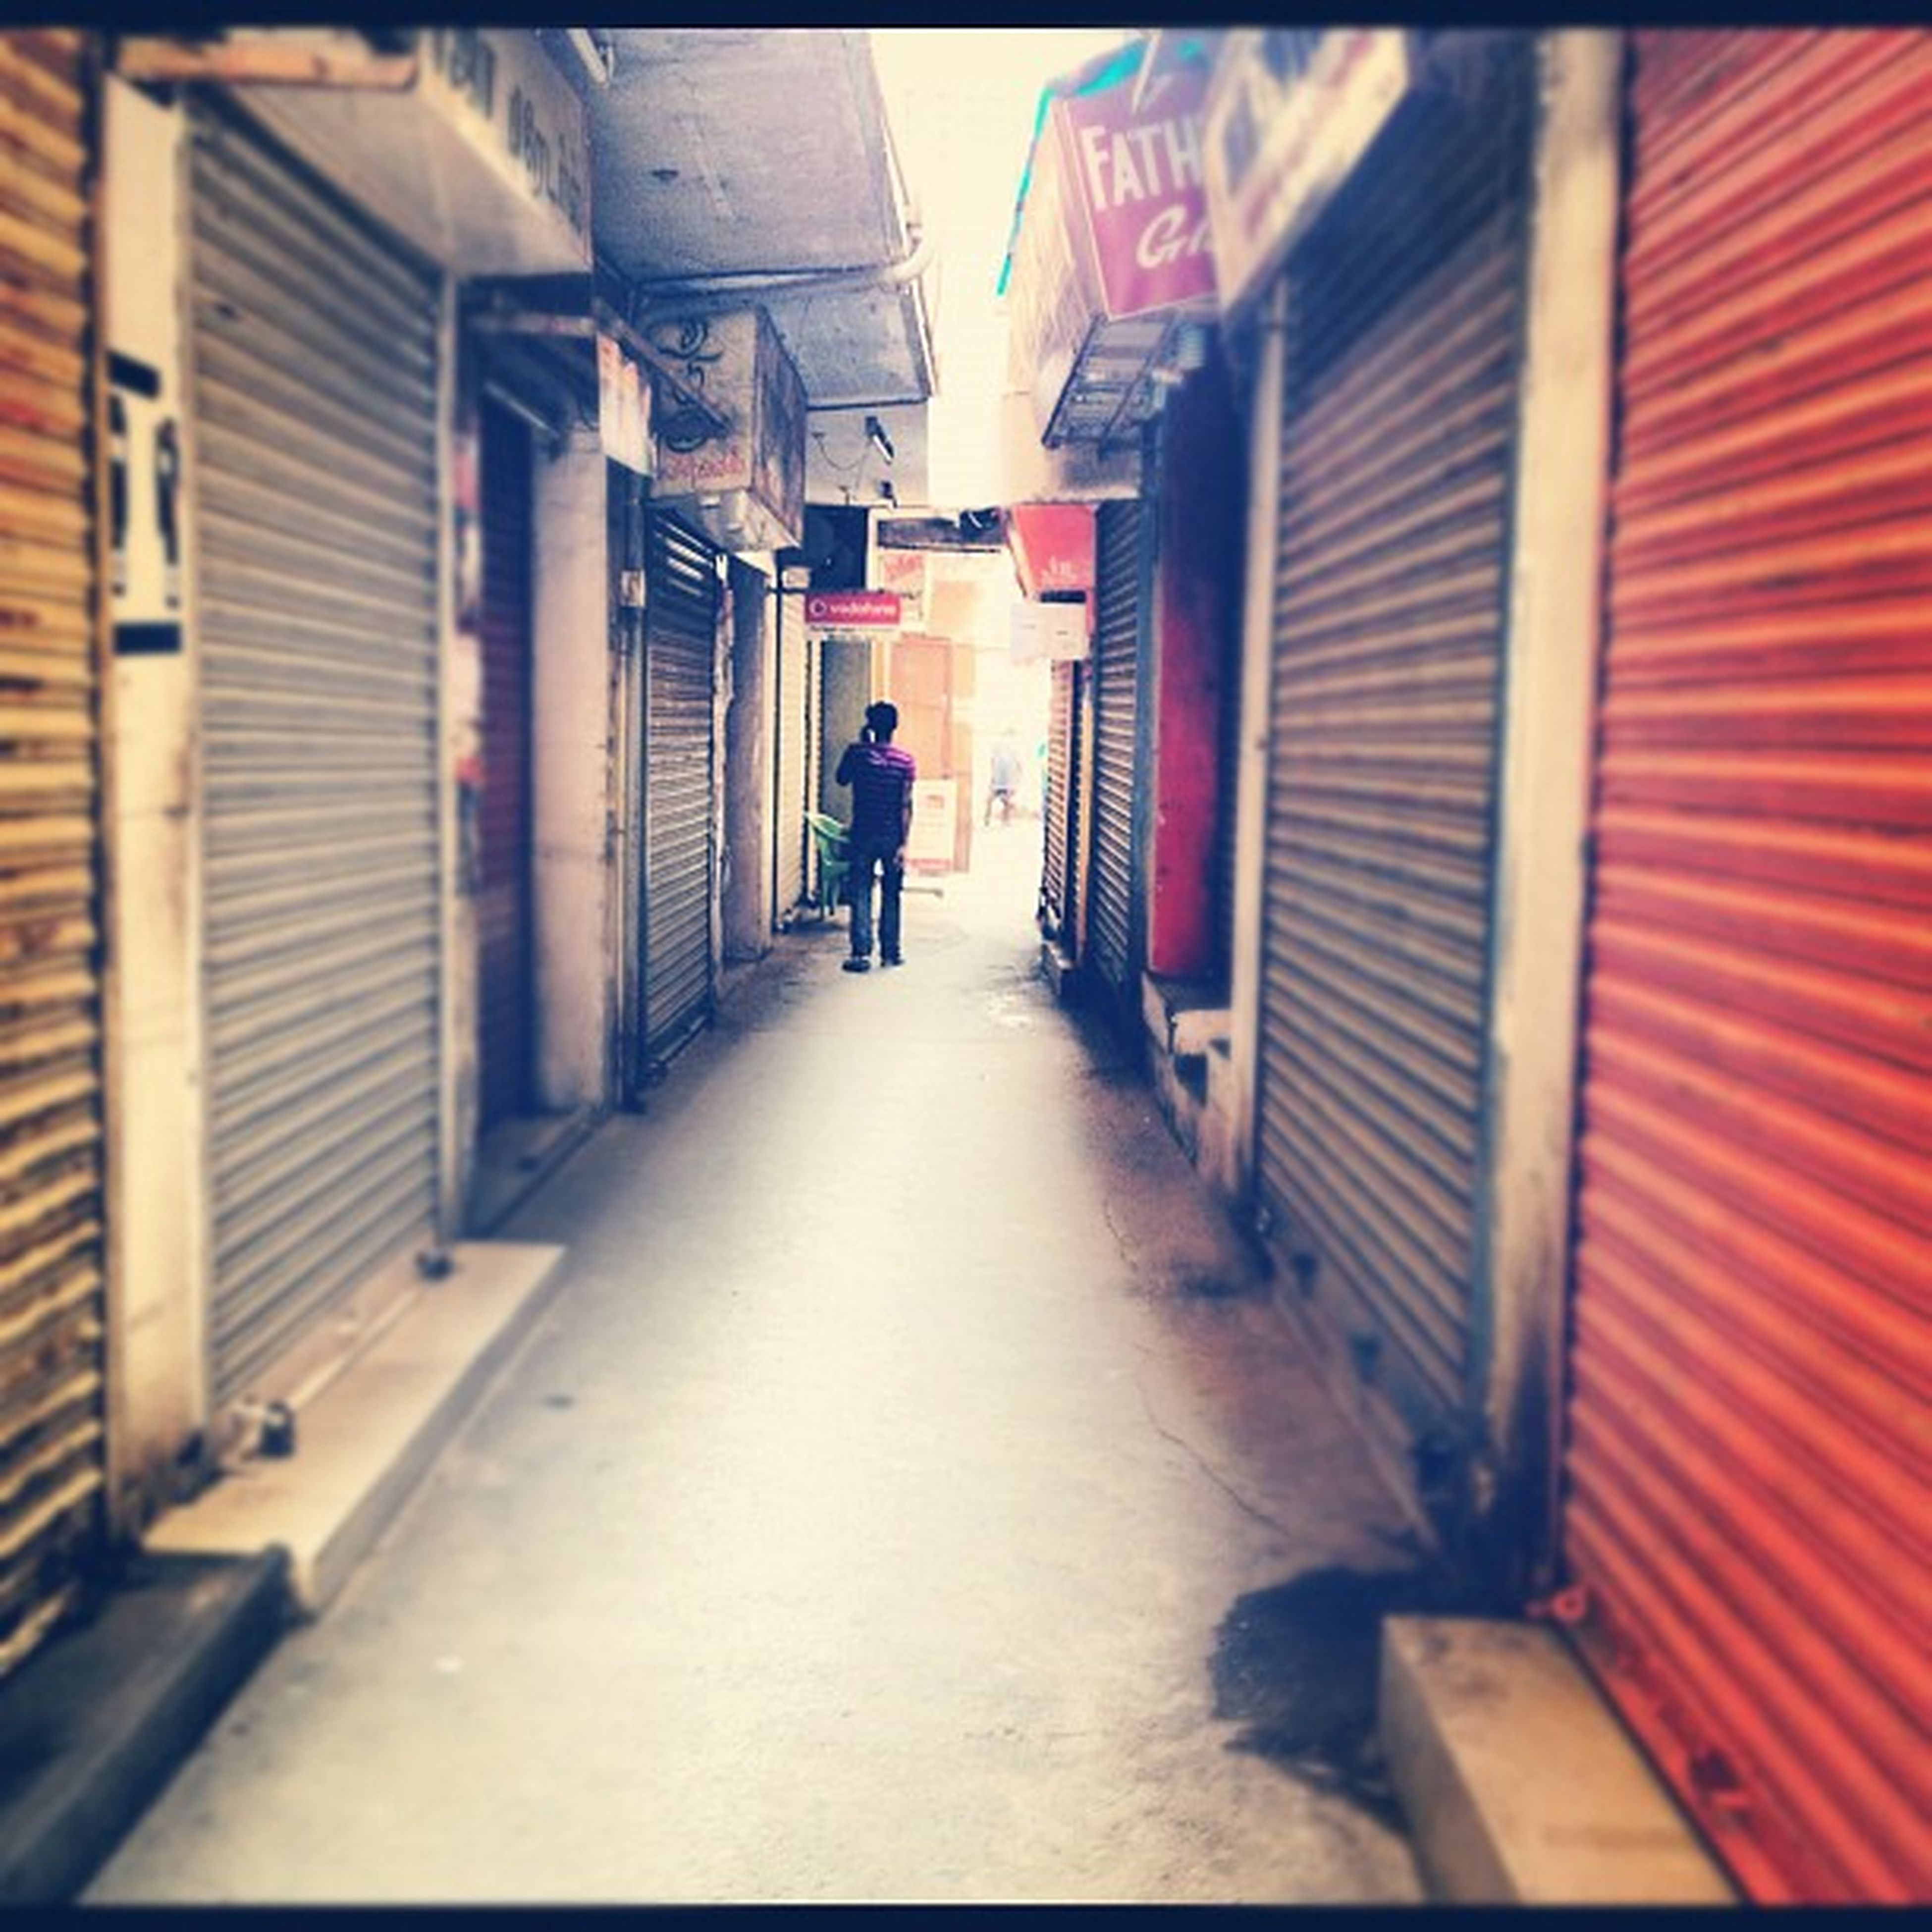 architecture, the way forward, built structure, building exterior, diminishing perspective, alley, walking, rear view, narrow, vanishing point, transfer print, men, full length, building, city, auto post production filter, street, corridor